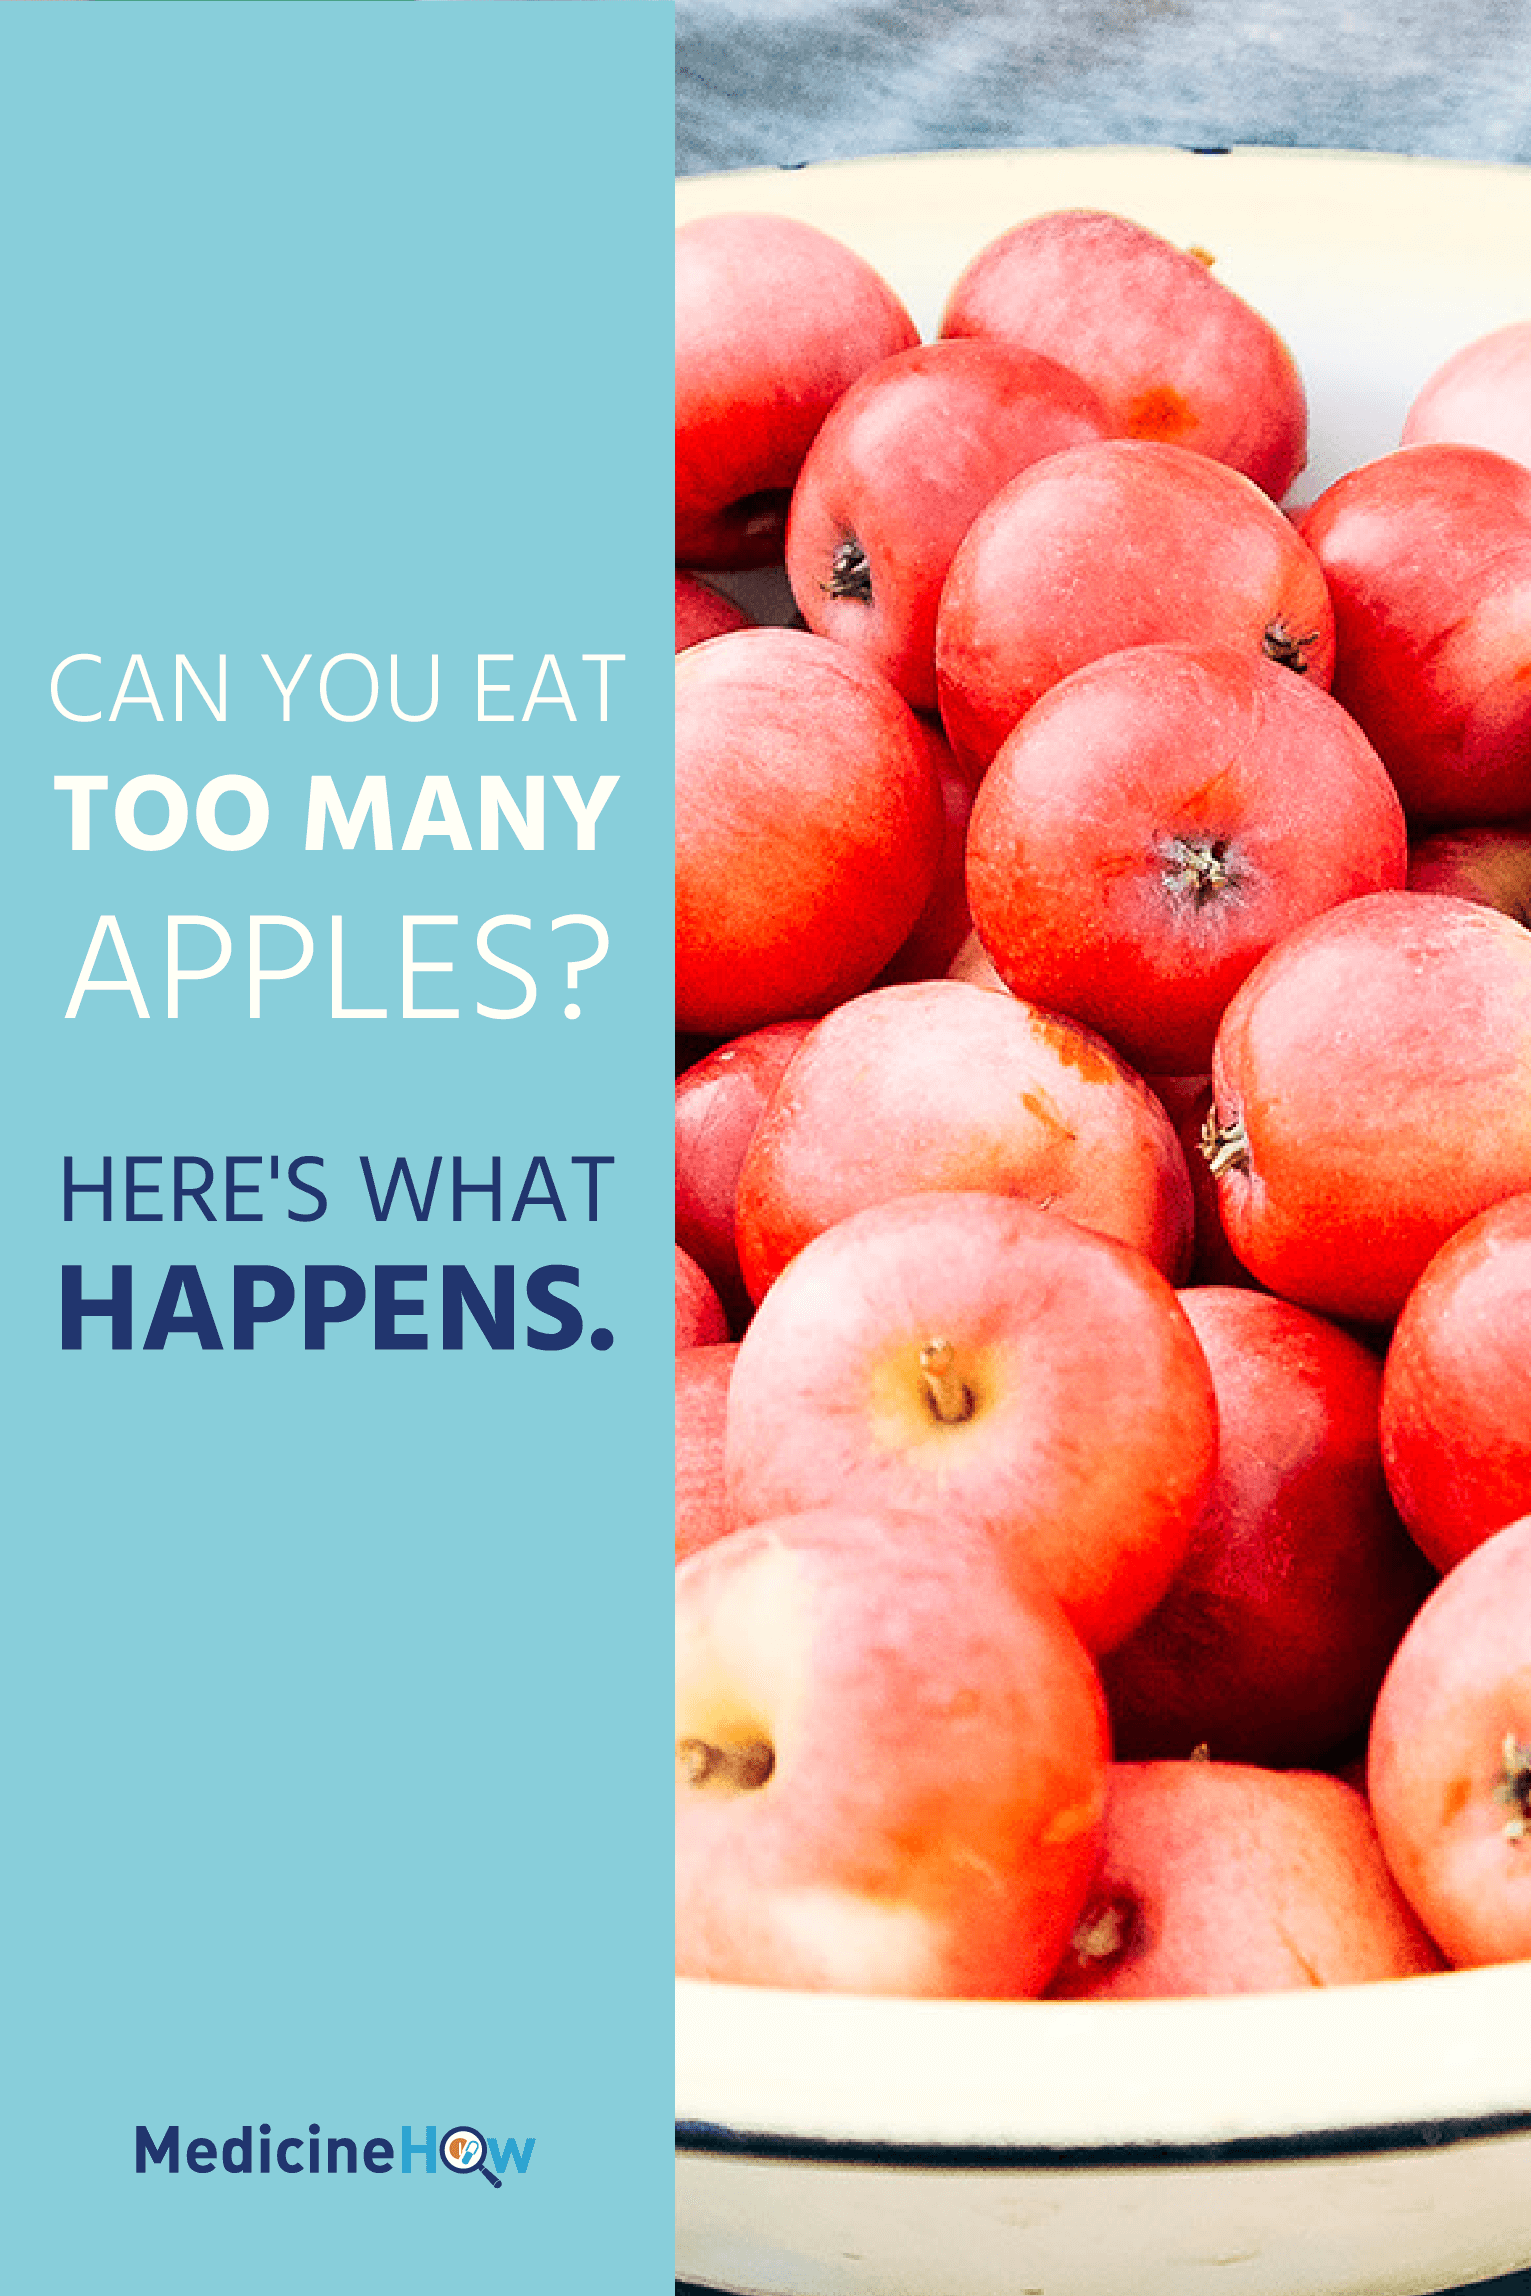 Can You Eat Too Many Apples? Here's what happens.